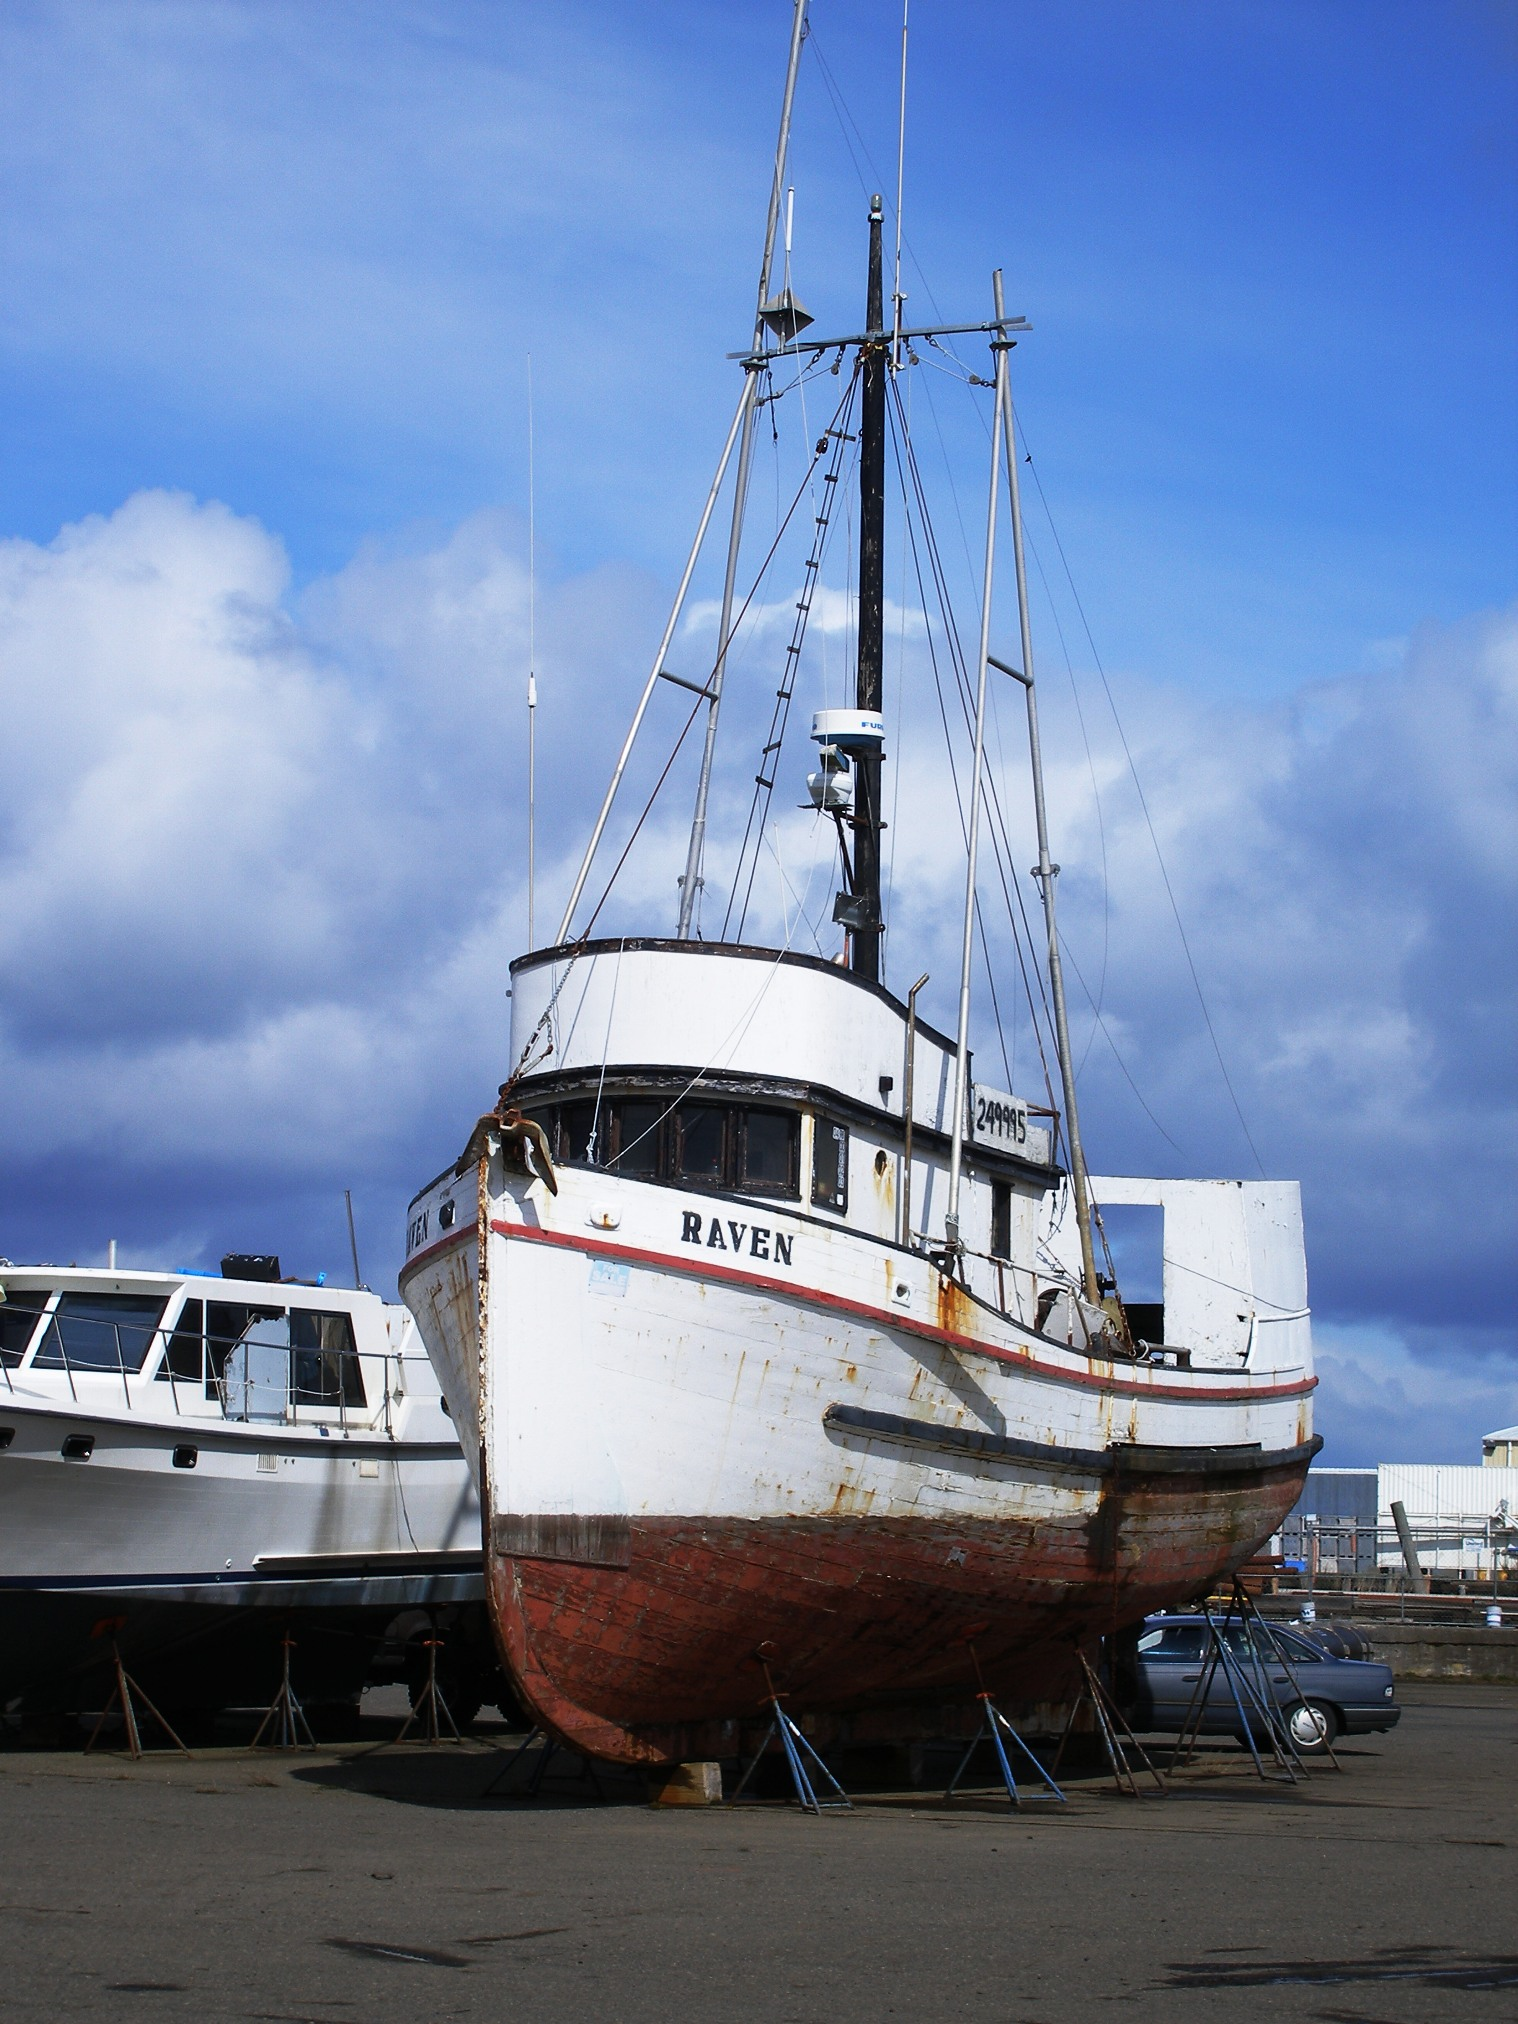 The Raven, a wooden fishing vessel, sits approximating her water-borne stance on blocks, the car in the background gives a little perspective for size